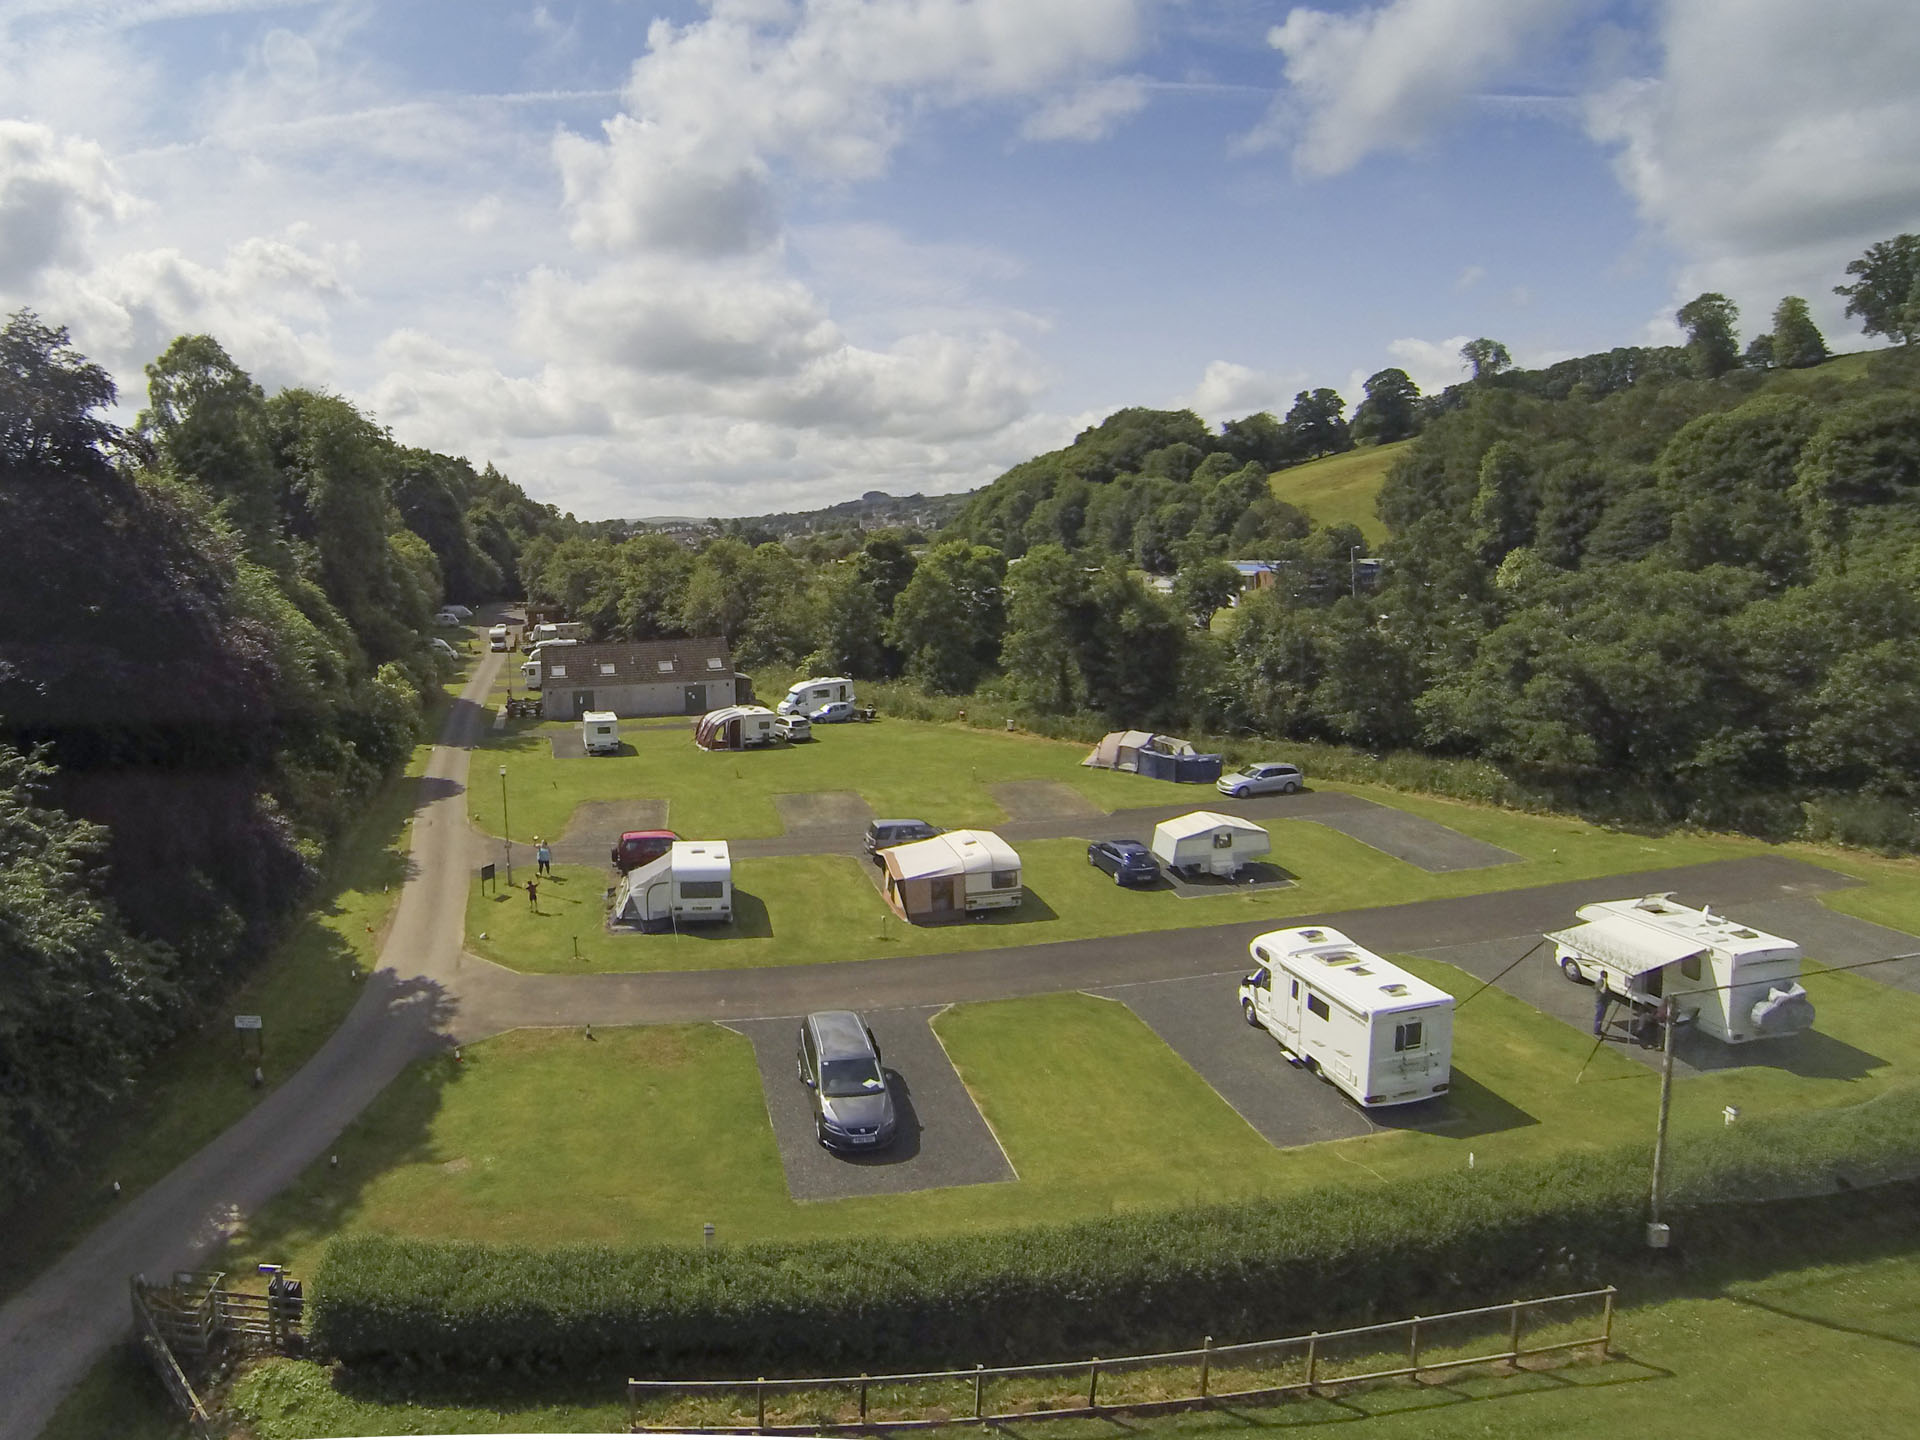 Nairn - Camping and Caravanning Club Site - The Camping